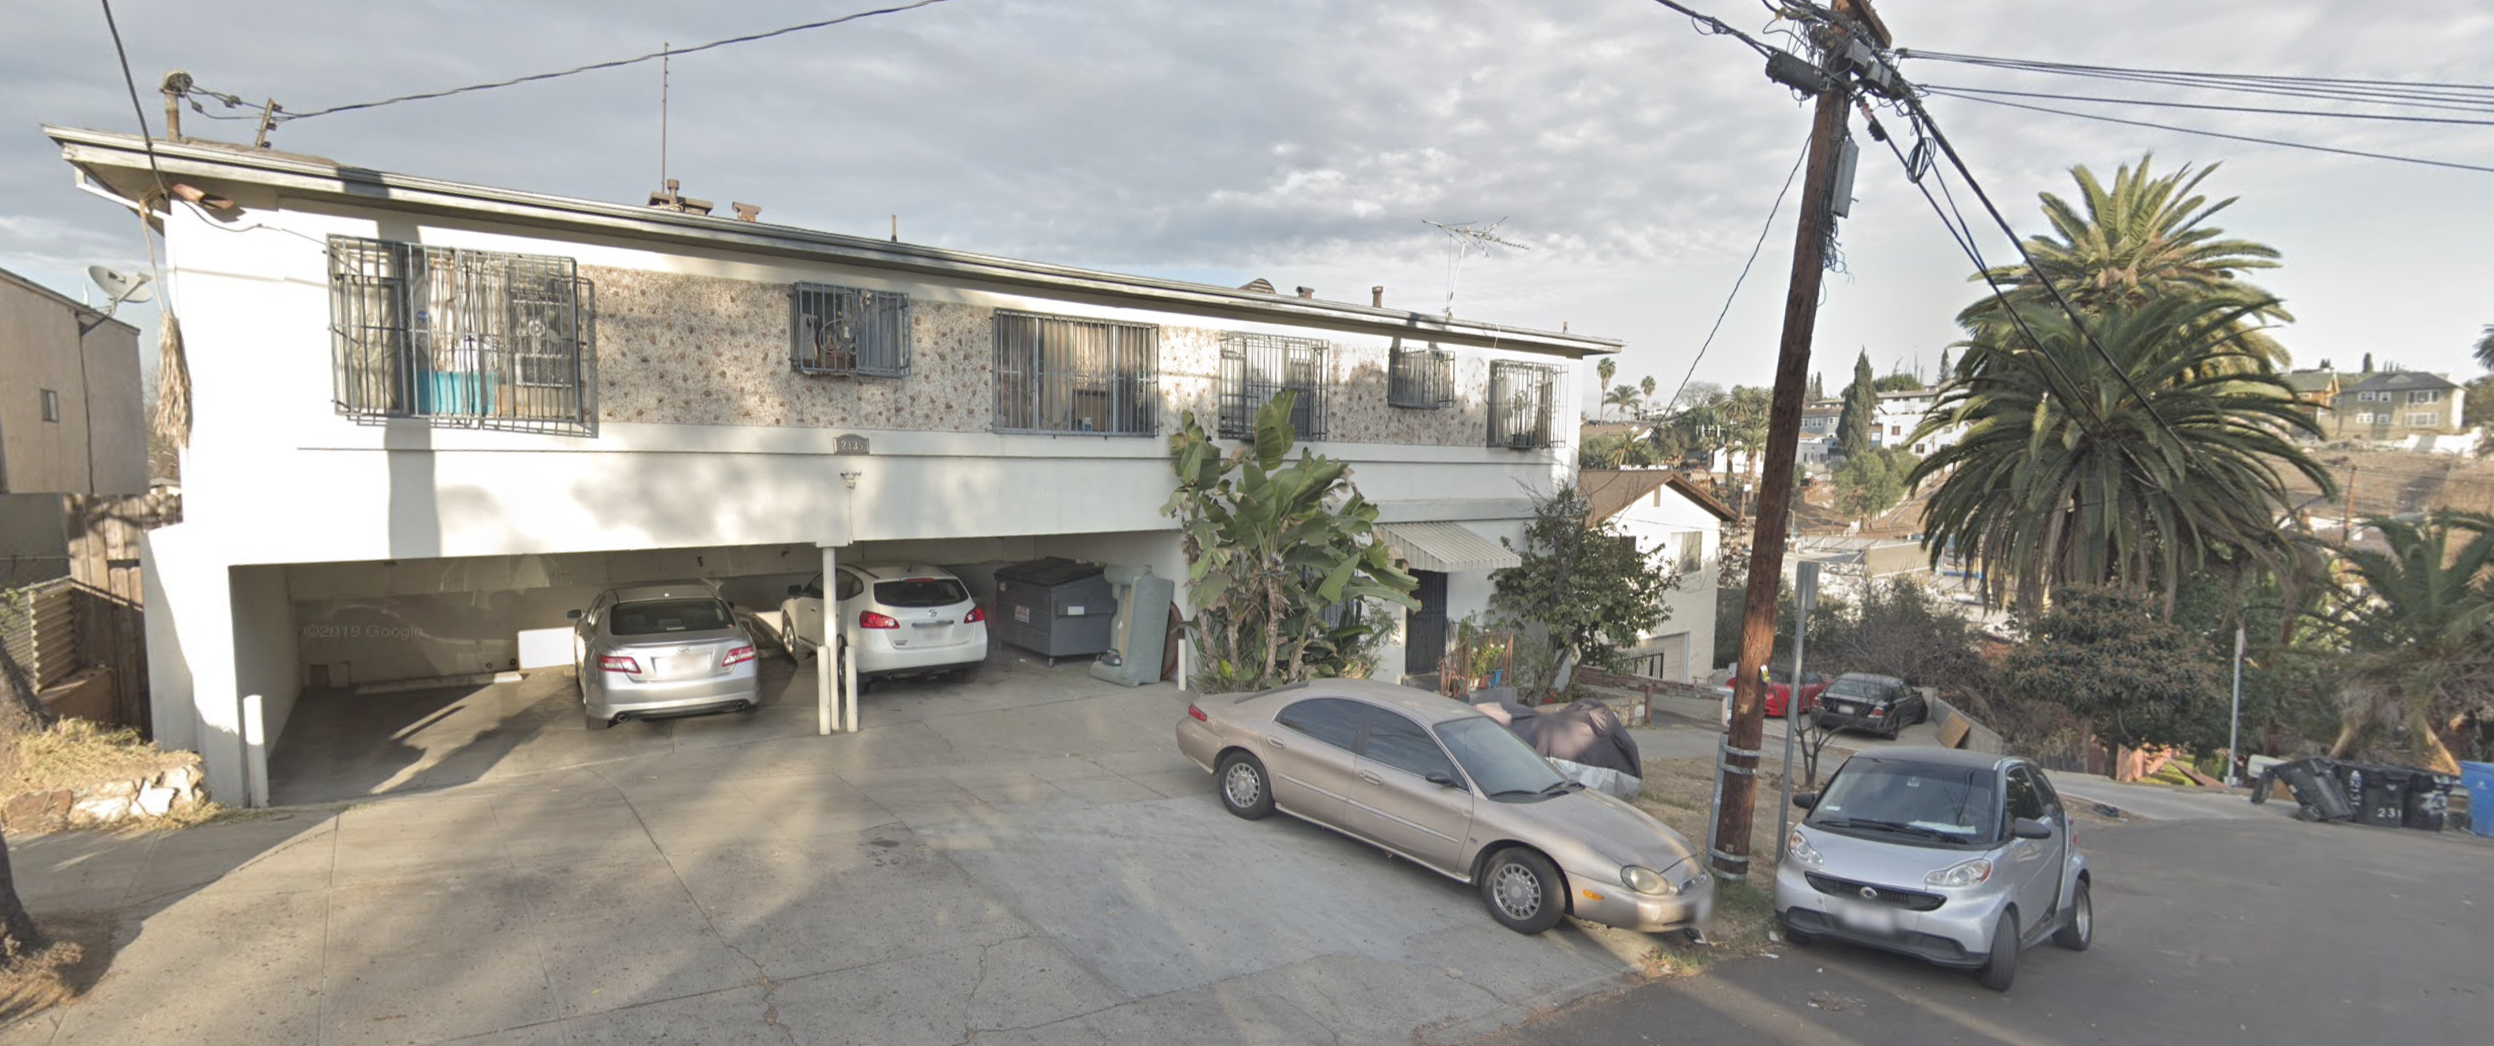 657 rent-controlled apartments stripped from LA's rental market in three months